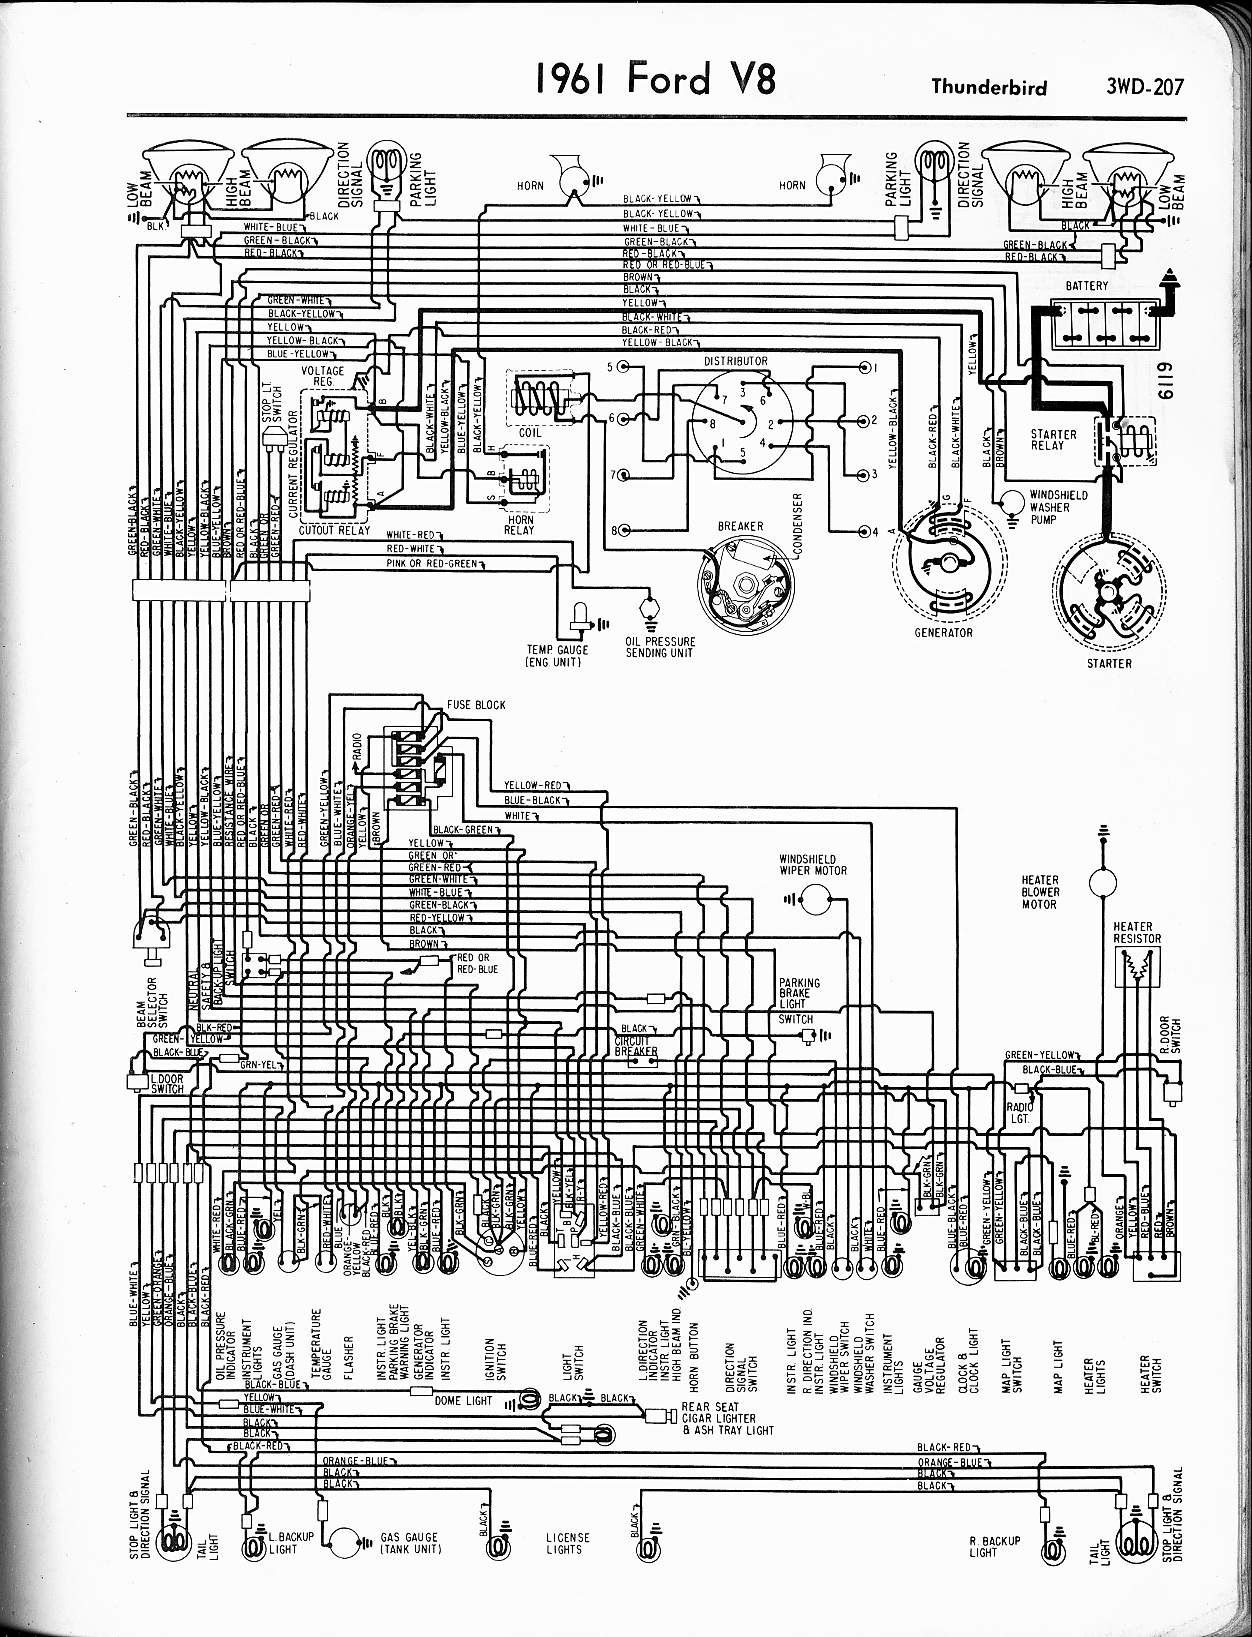 57 65 ford wiring diagrams 1996 ford thunderbird wiring diagram for 2003  ford thunderbird